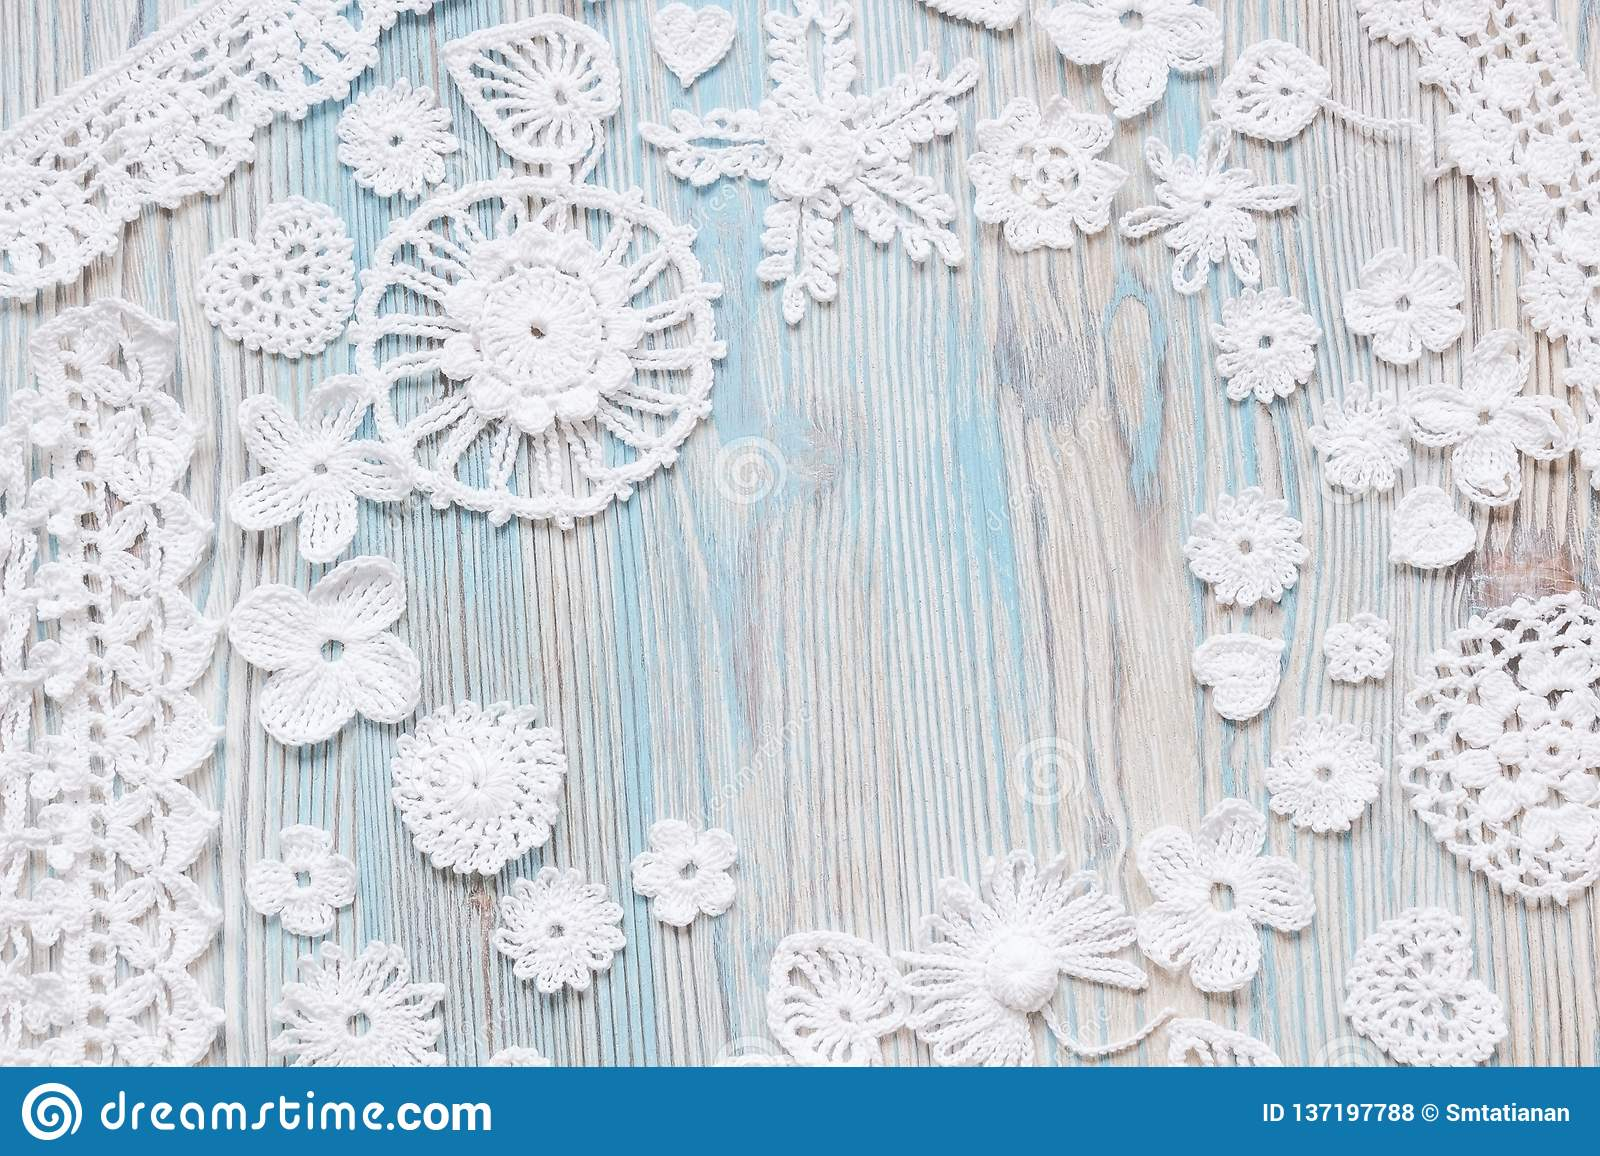 An Overhead Photo Of White Vintage Handmade Irish Lace Crochet